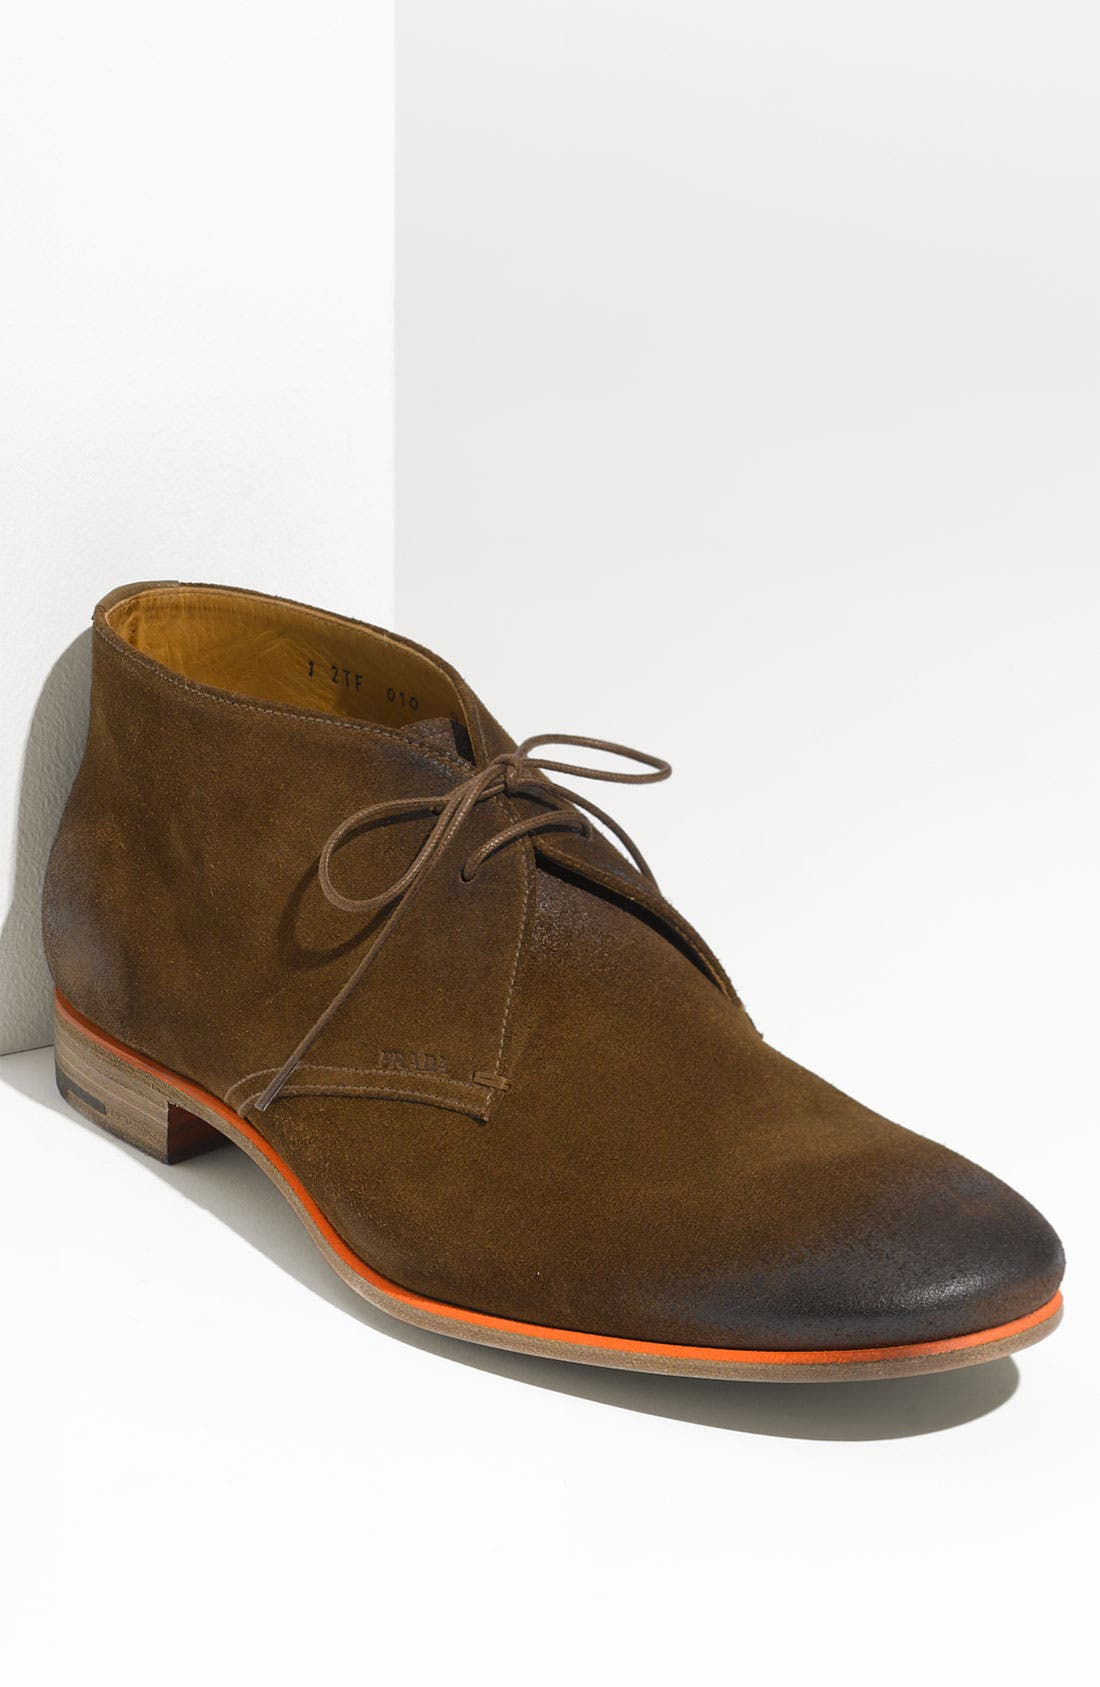 Alternate Image 1 Selected - Prada Plain Toe Chukka